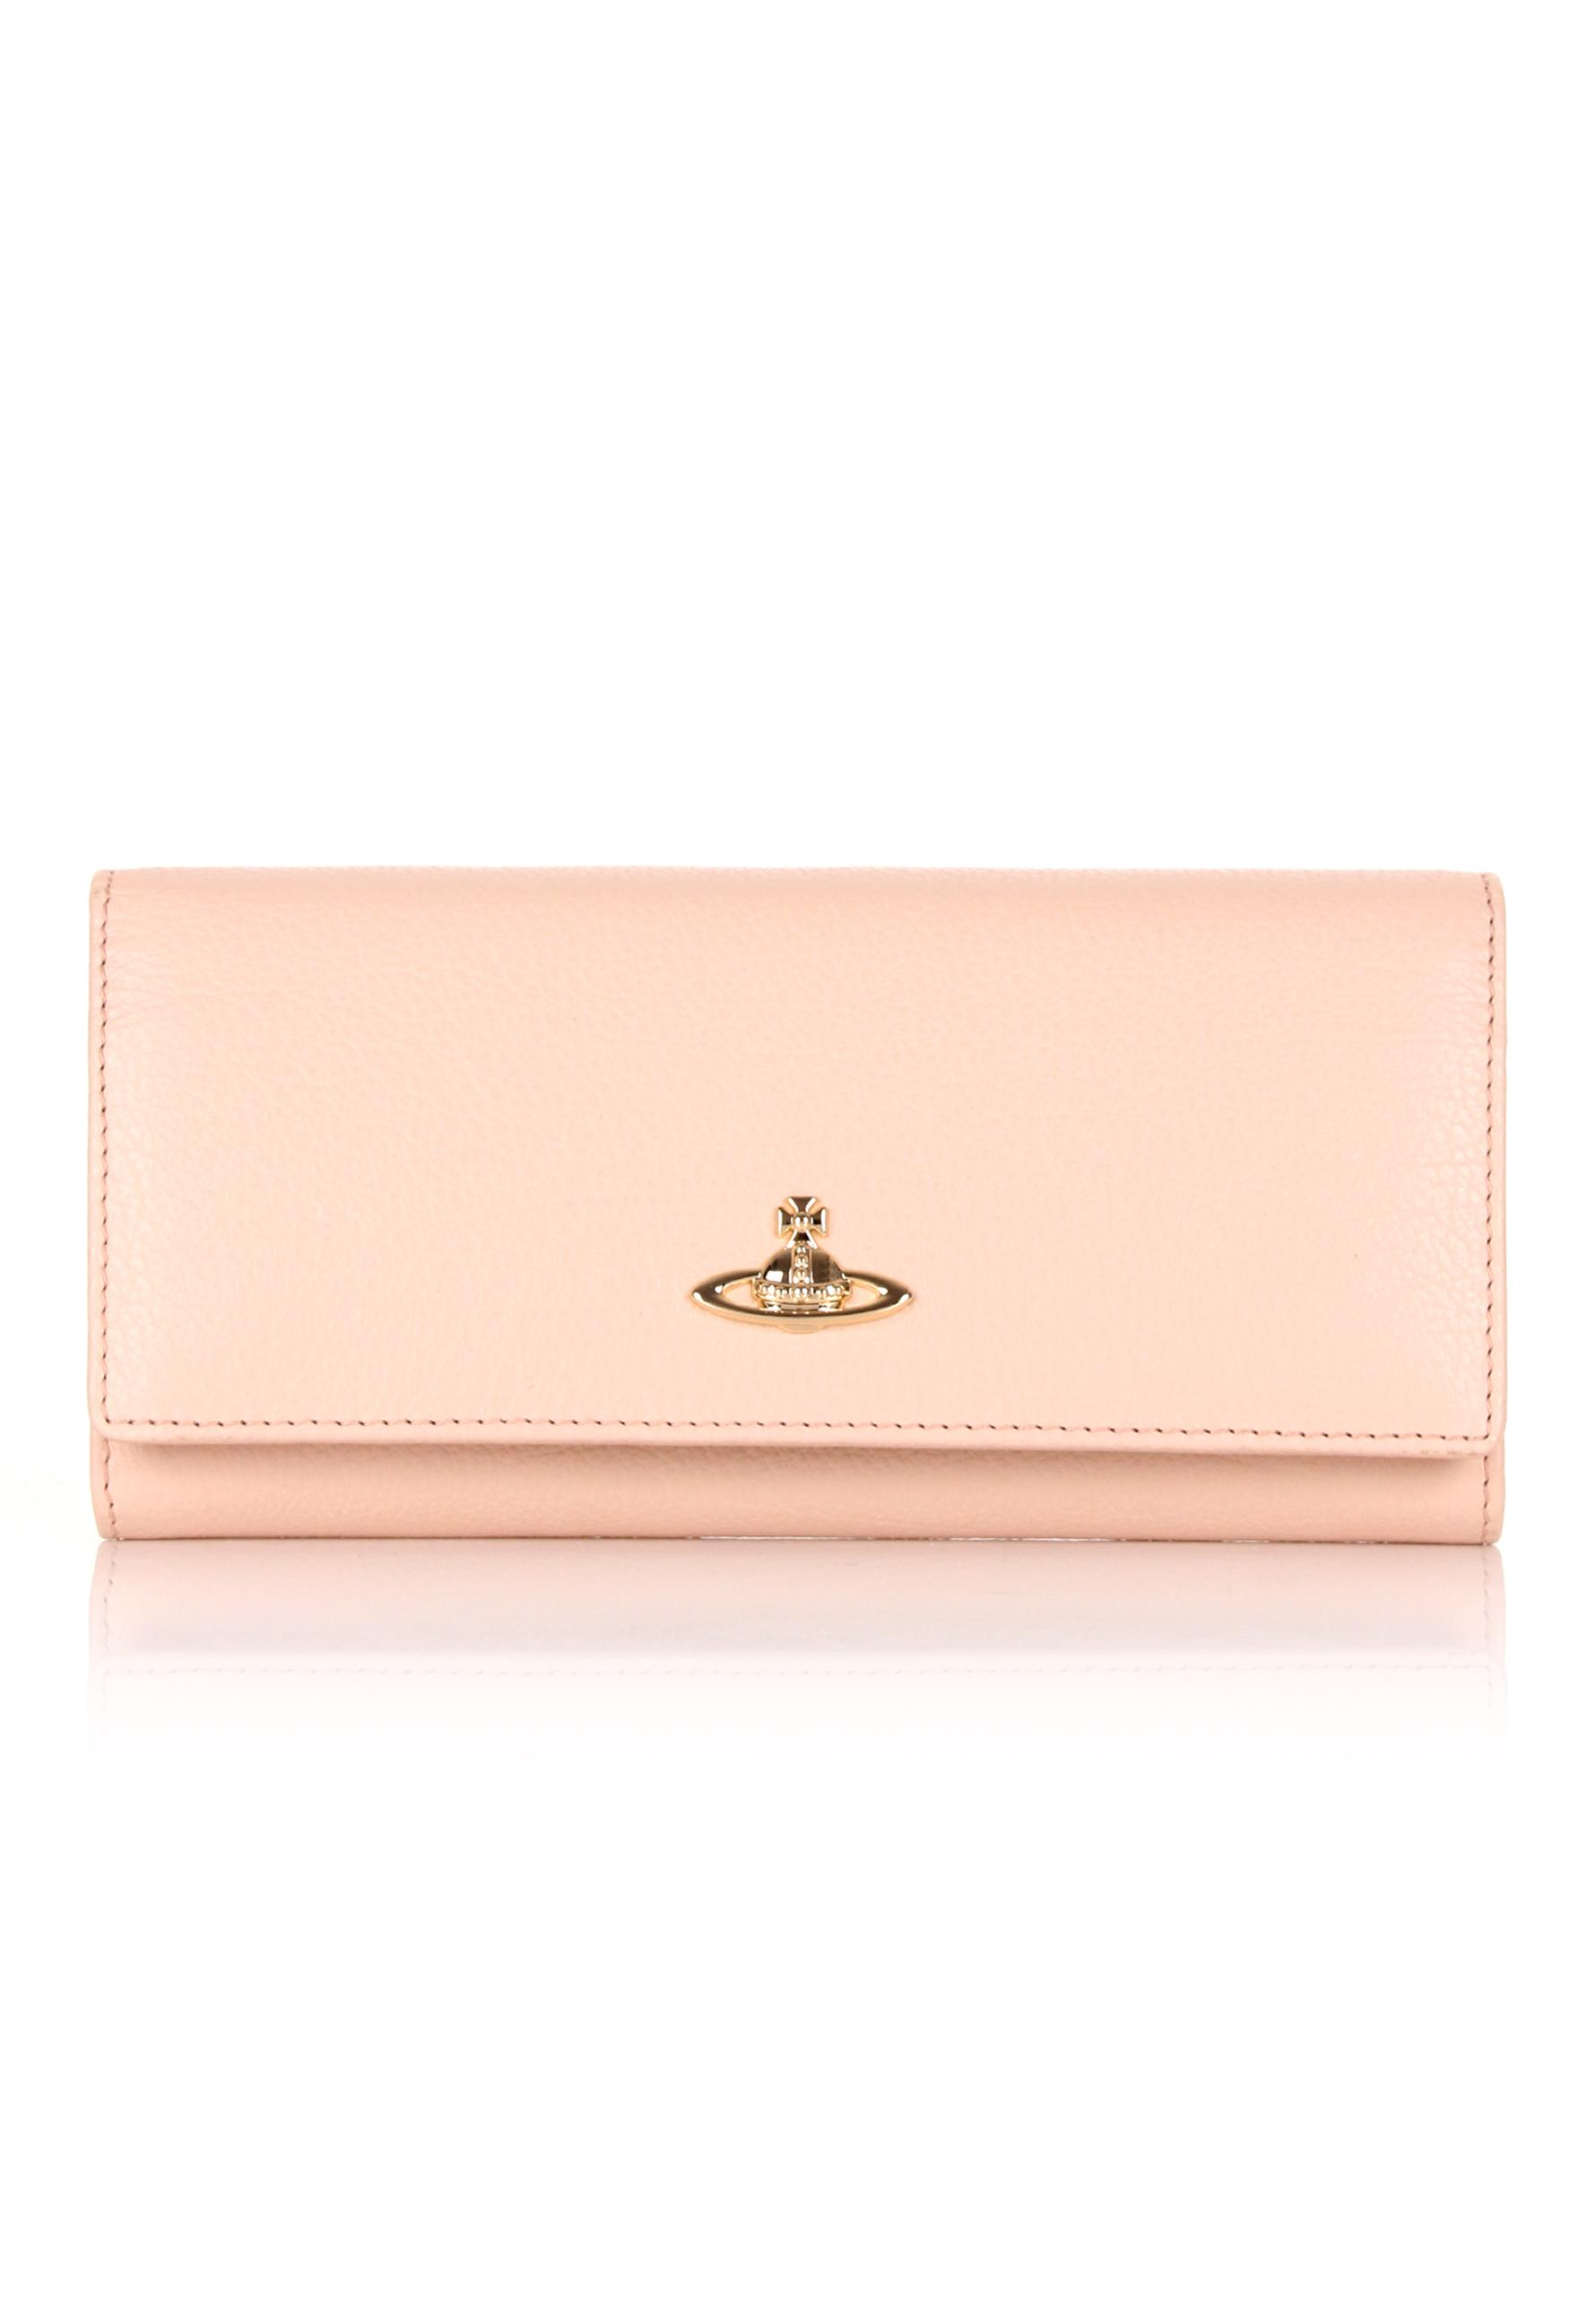 b84815176 Vivienne Westwood Balmoral 321387 Long Purse Pink/cream in Pink - Lyst